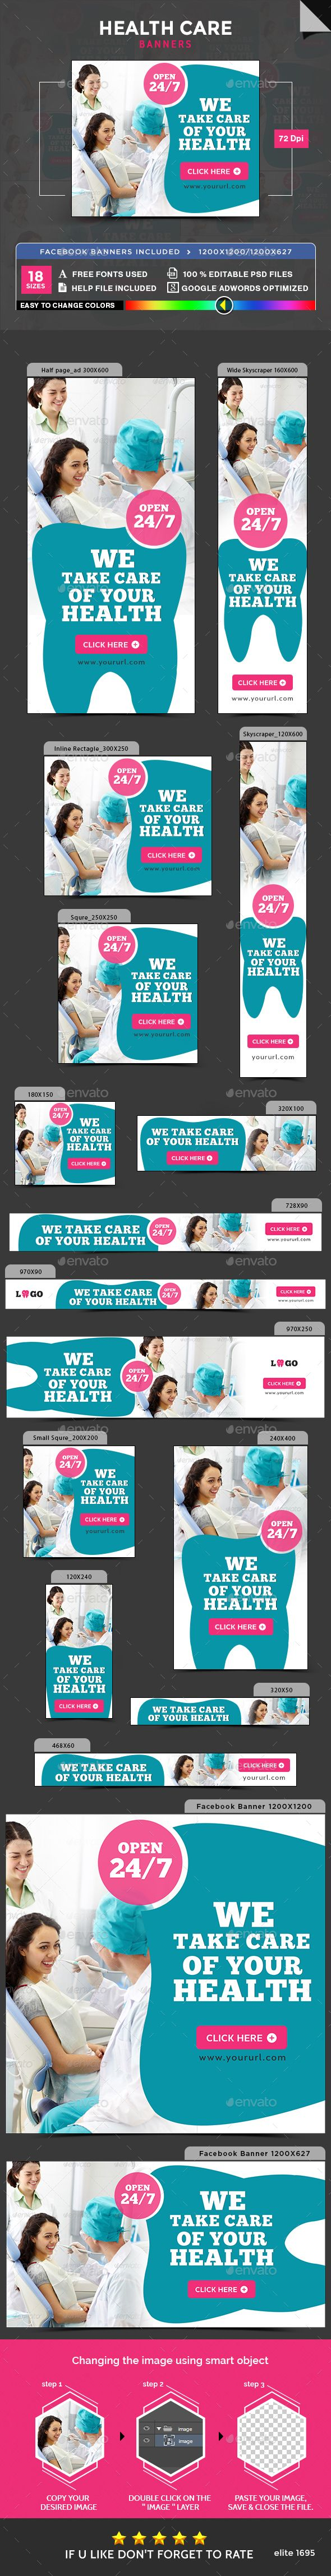 Health Care Banners Template PSD #promote Download here: https://graphicriver.net/item/health-care-banners/17345285?ref=ksioks